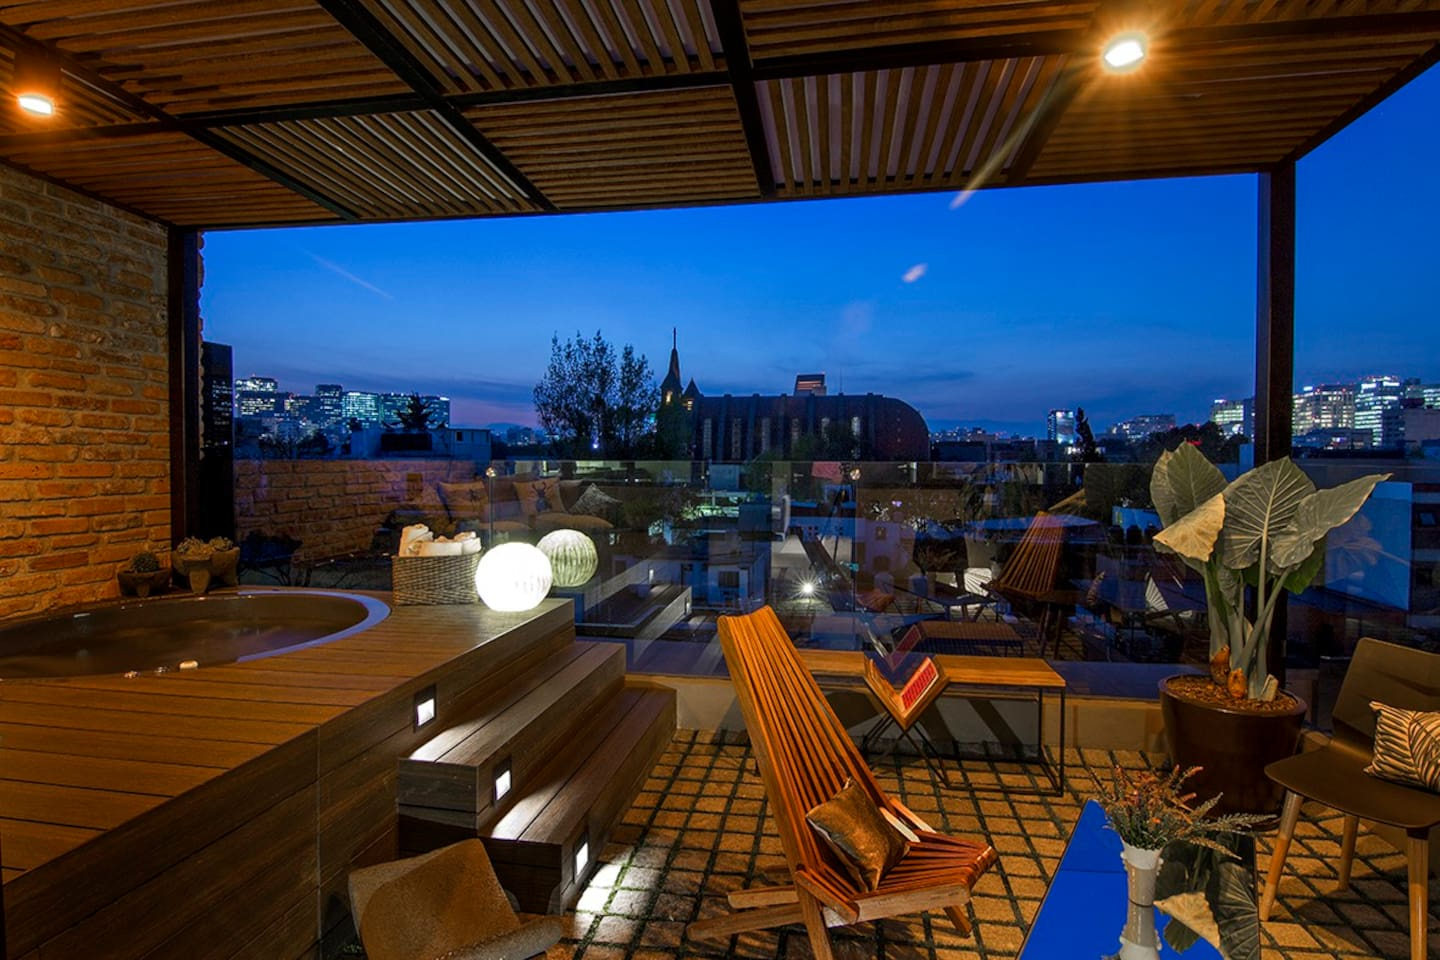 Terrace with a view... private jacuzzi and deck to chill out. Enjoy the sunset!